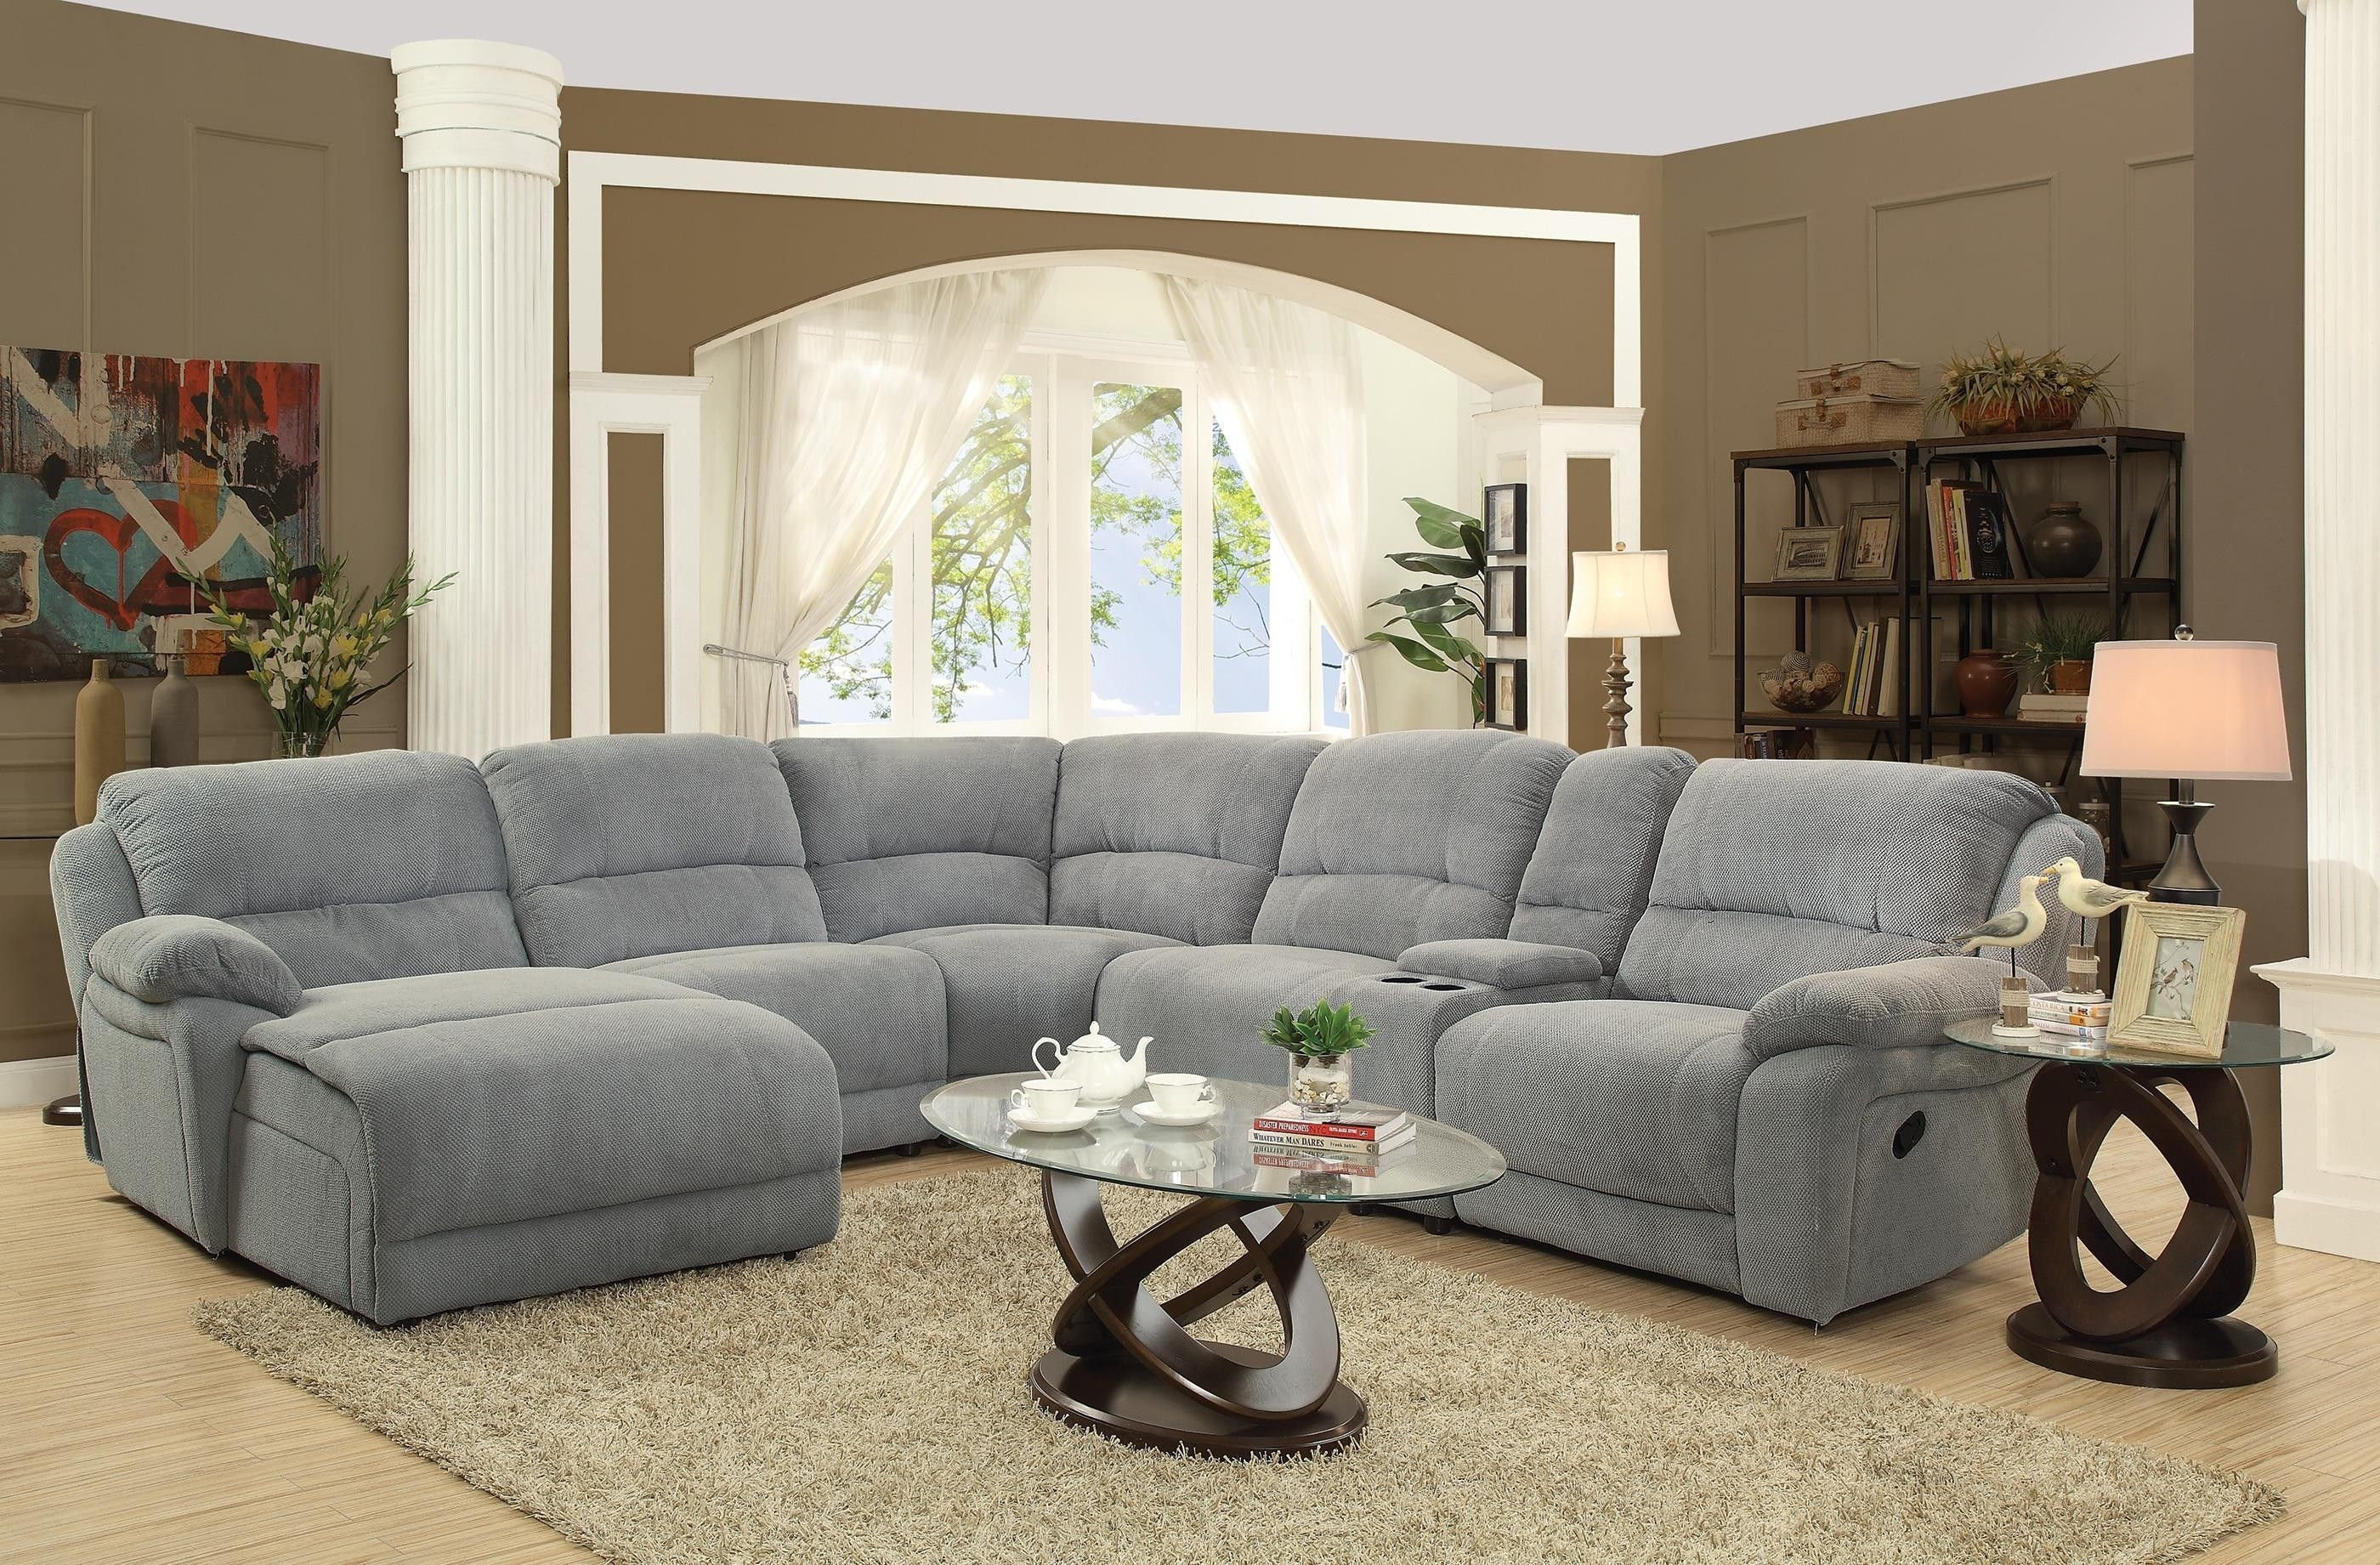 6 Piece Reclining Sectional Sofa | Baci Living Room Within Denali Light Grey 6 Piece Reclining Sectionals With 2 Power Headrests (Photo 11 of 25)